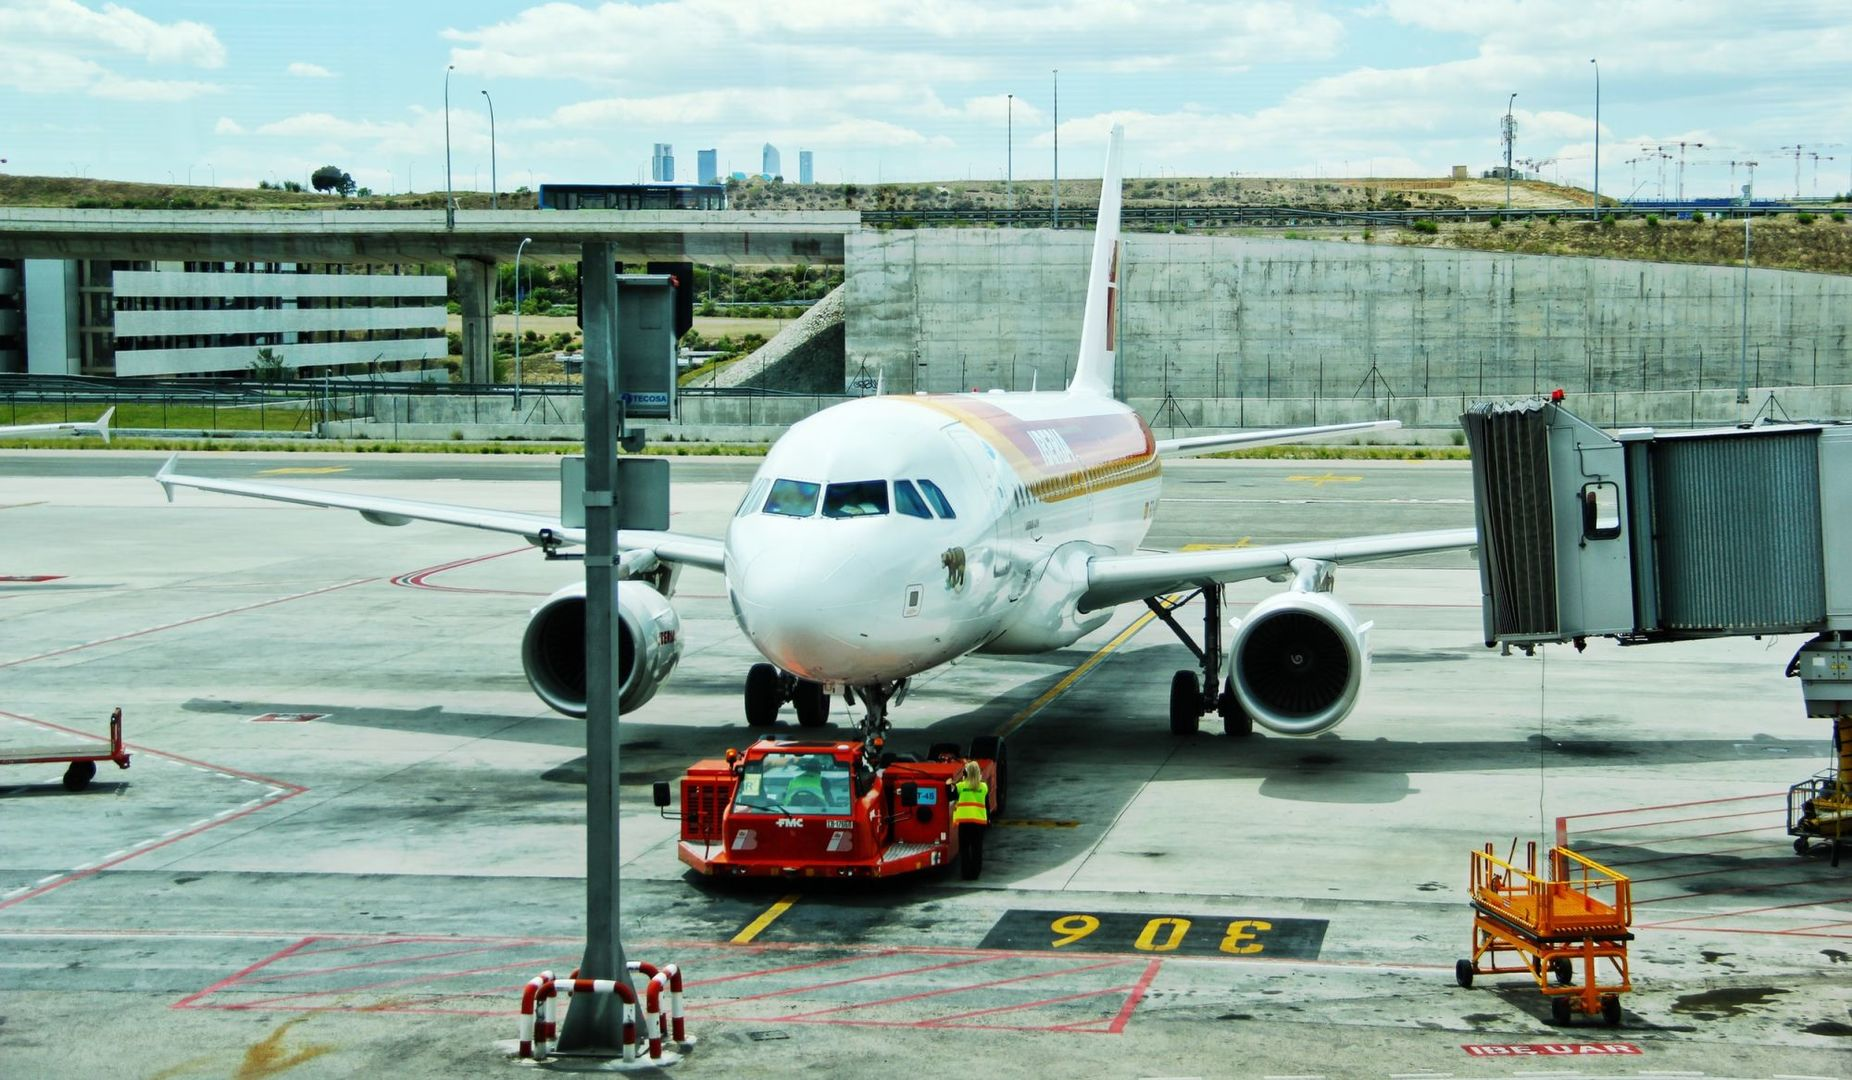 Off-Site Parking-The Simplest Way Of Getting To The Terminal